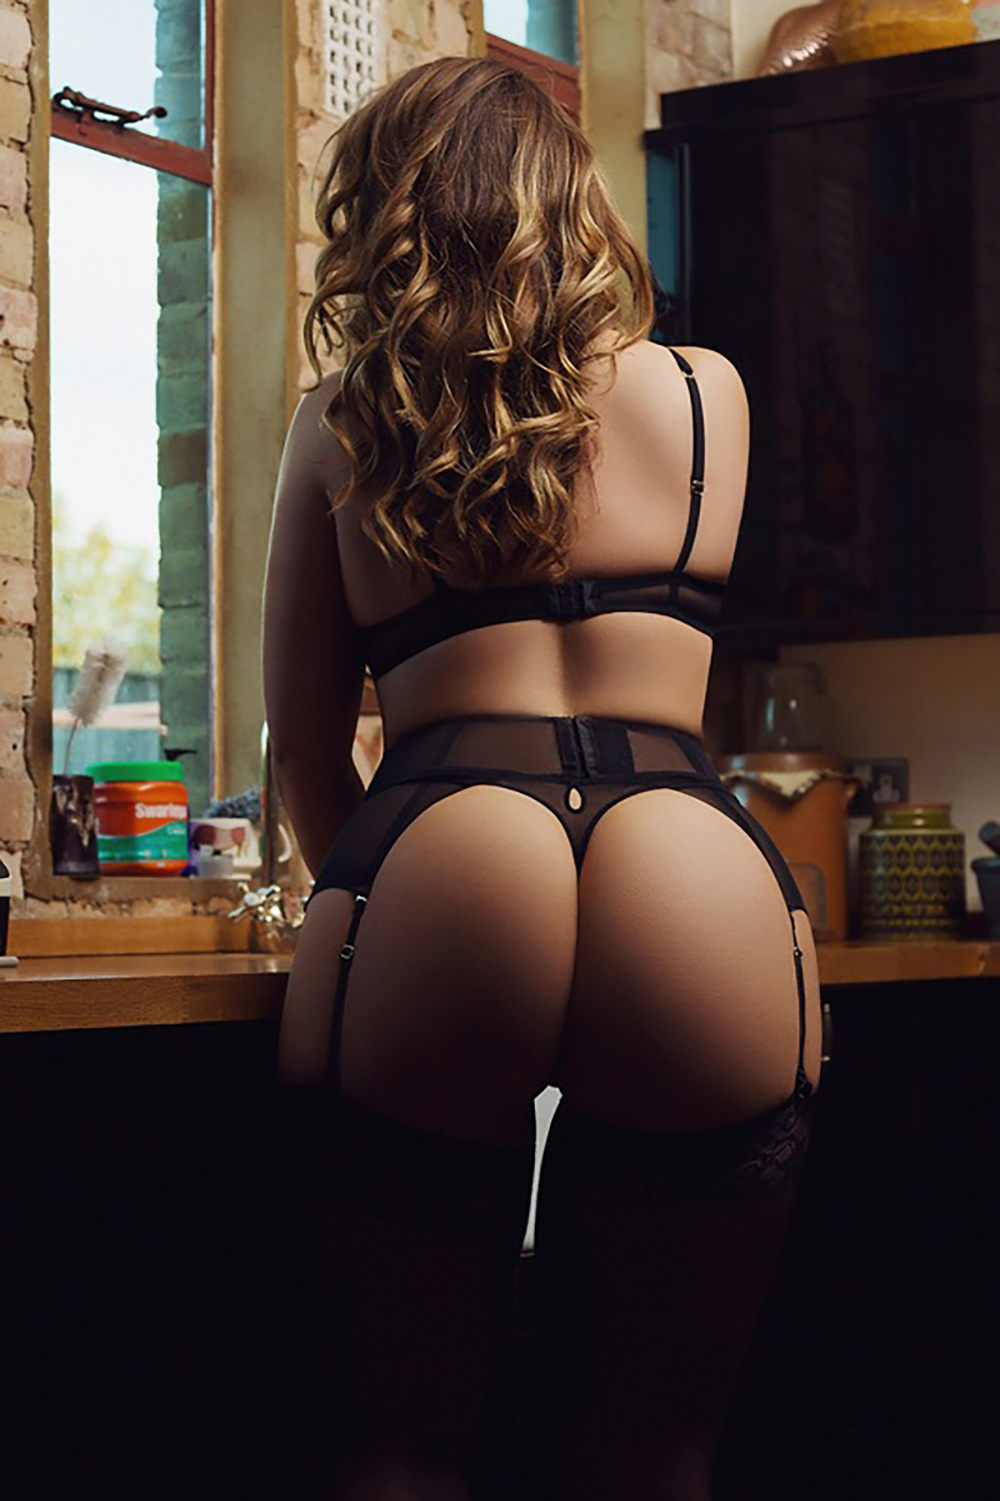 Curvy High-Class Elite Escort | Luxury Tall Thick Ass BBW Companion & Courtesan in London; NYC; Dubai & Paris | Busty Phat Mistress for all your BDSM Dominatrix desires | Submissive Feedee Spanking PAWG Whooty Twerking Big Bottomed Goddess